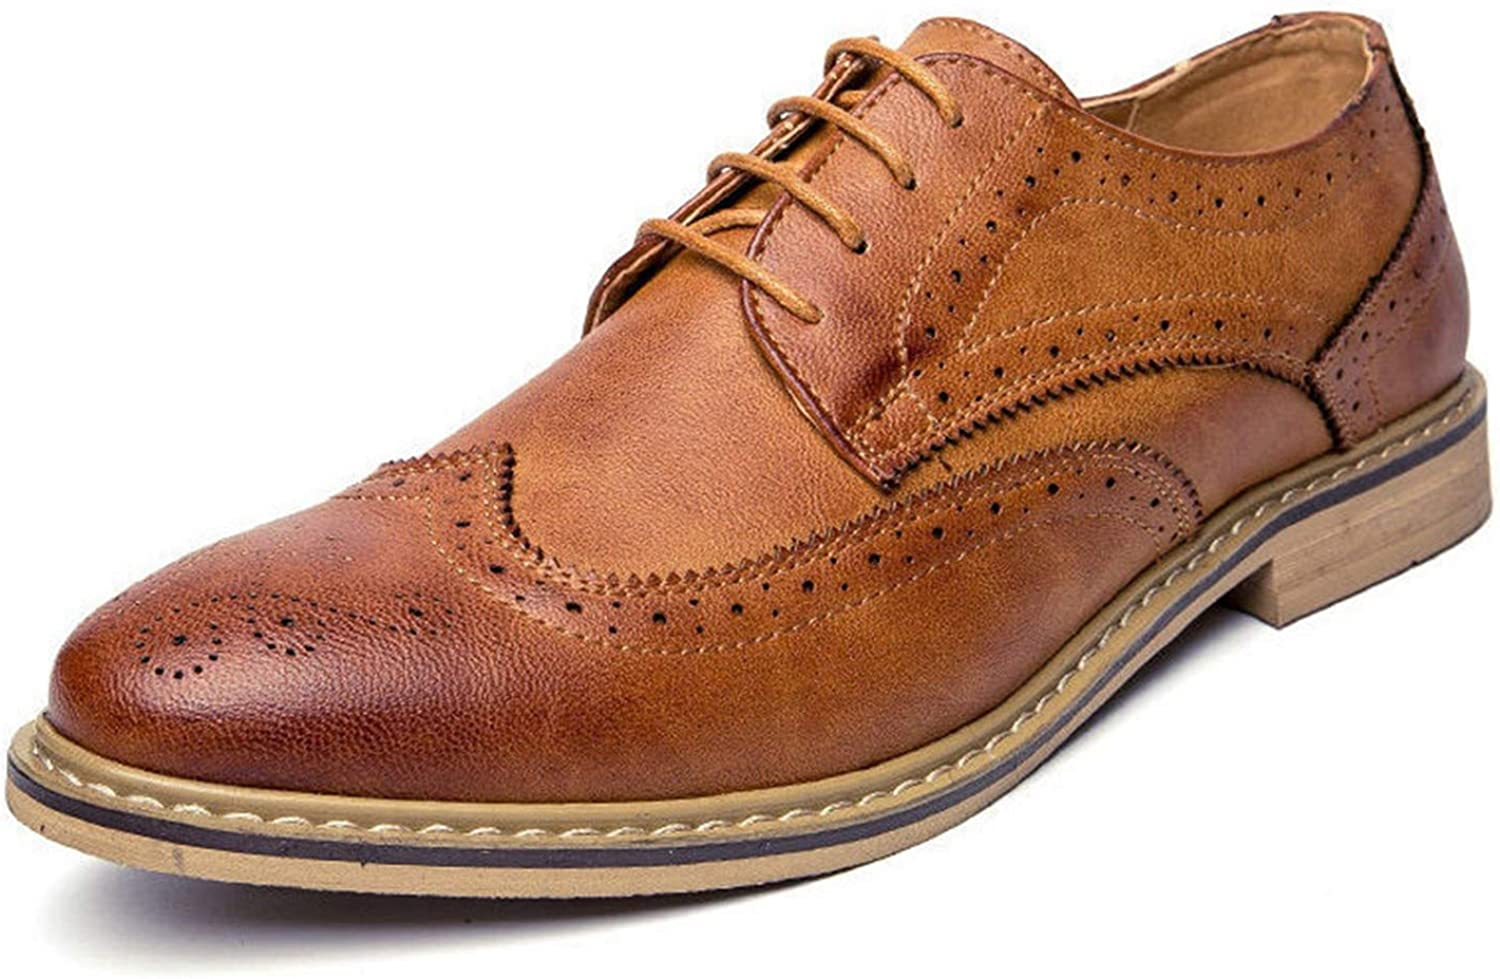 Luxury Leather Mens Flats Shoes Casual British Style Men Oxfords Fashion Dress Shoes for Men